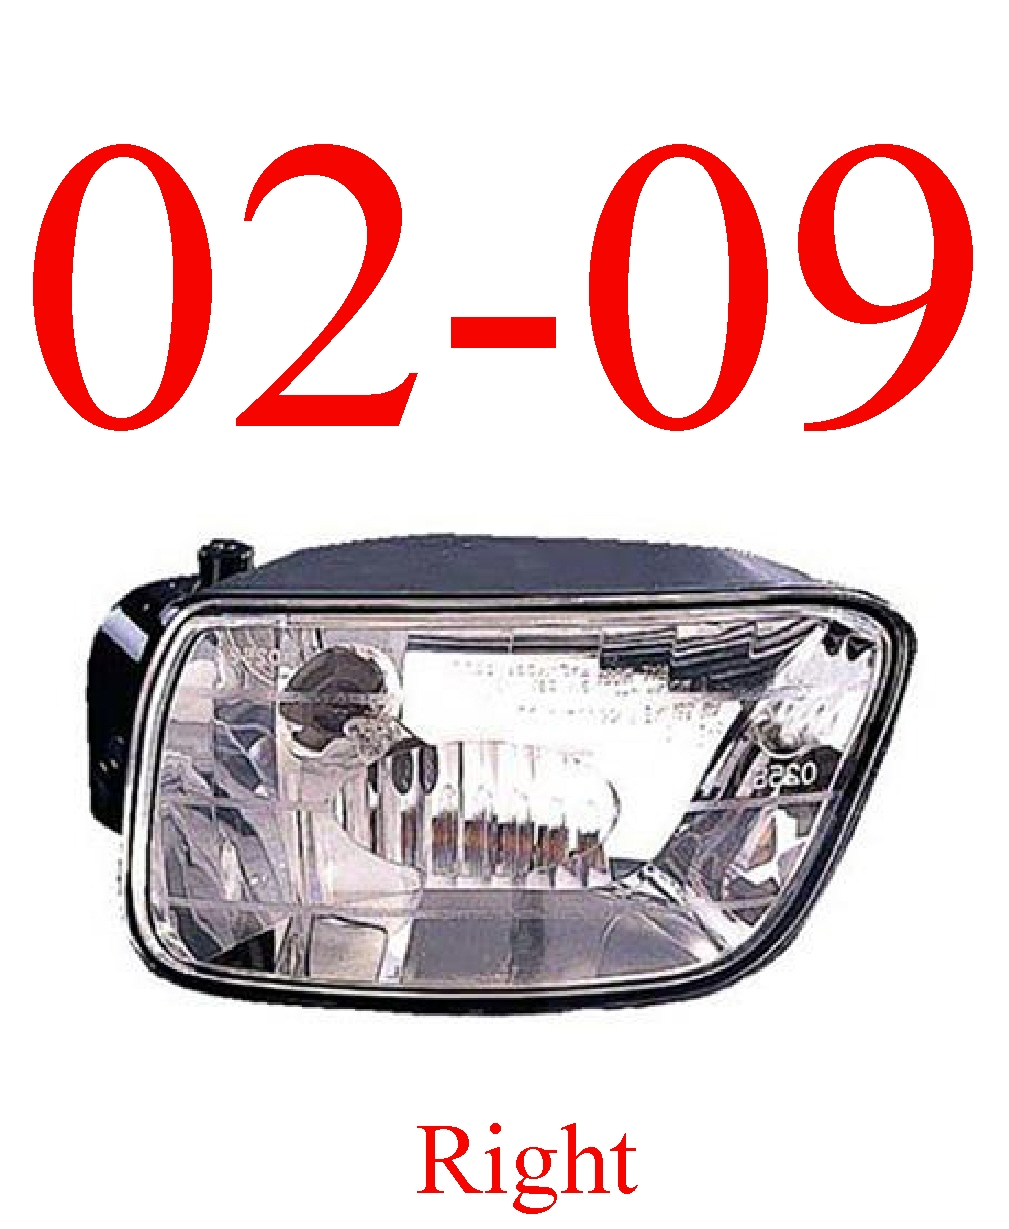 02-09 Trailblazer Right Fog Light Assembly